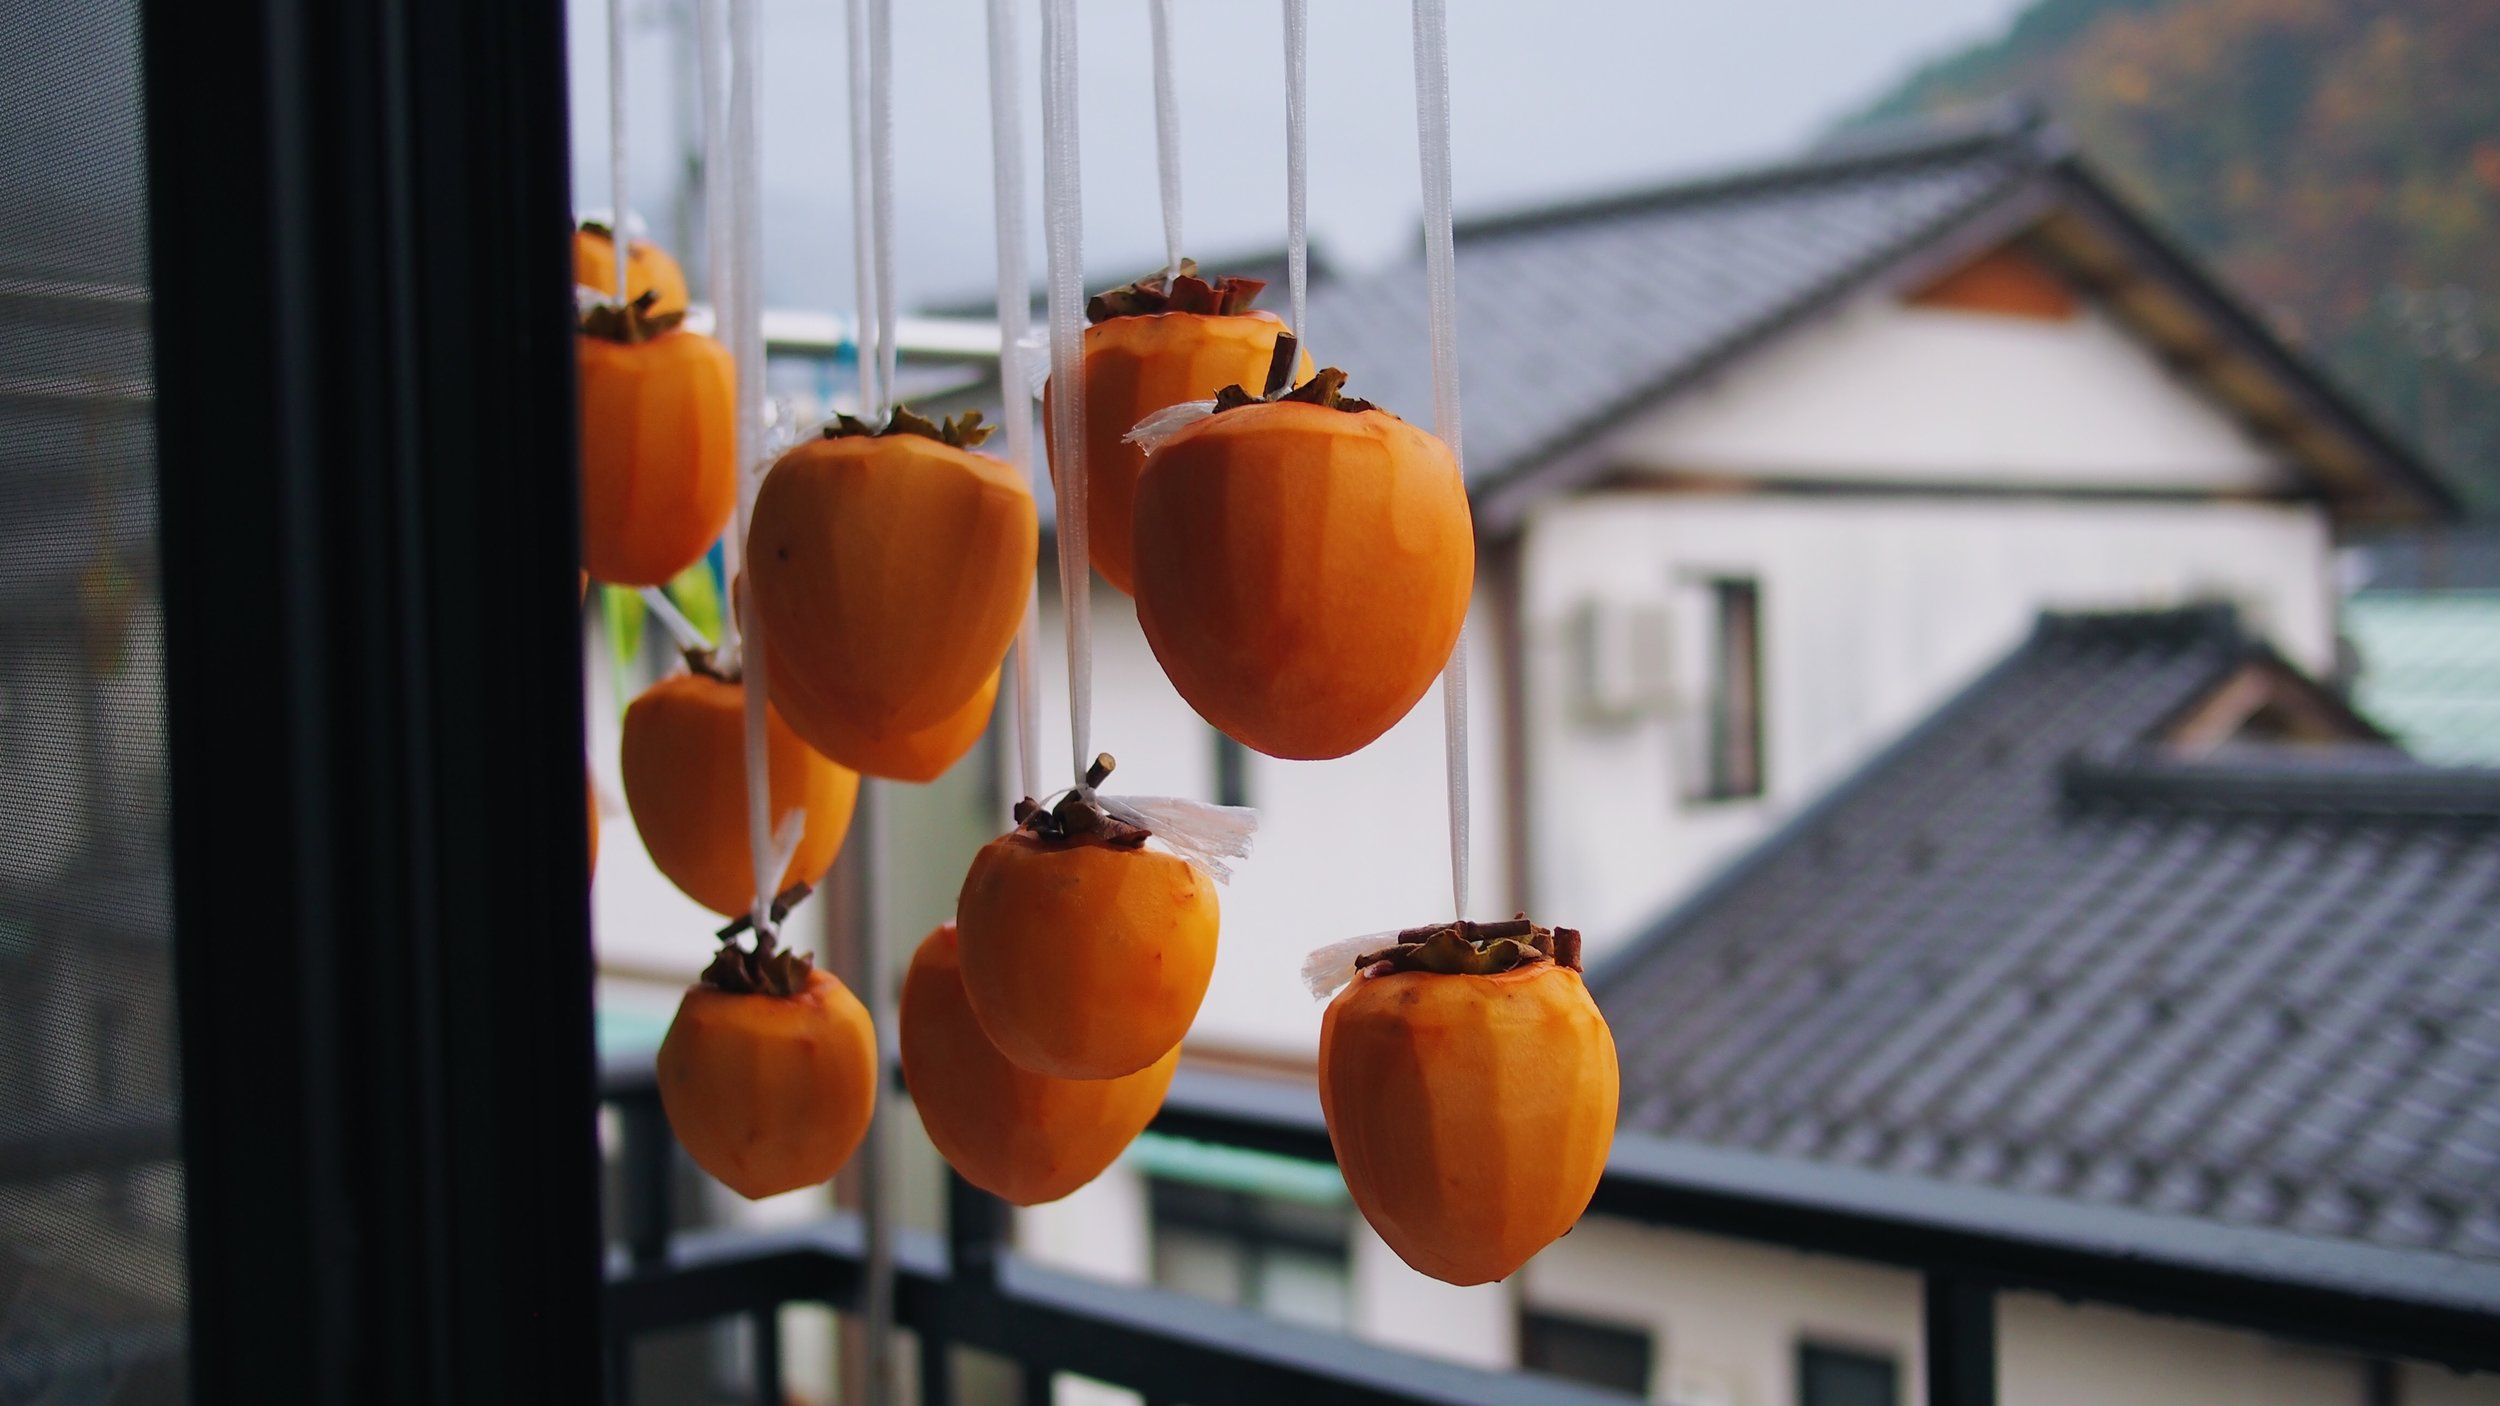 Hachiya persimmons (渋柿) being left out to dry